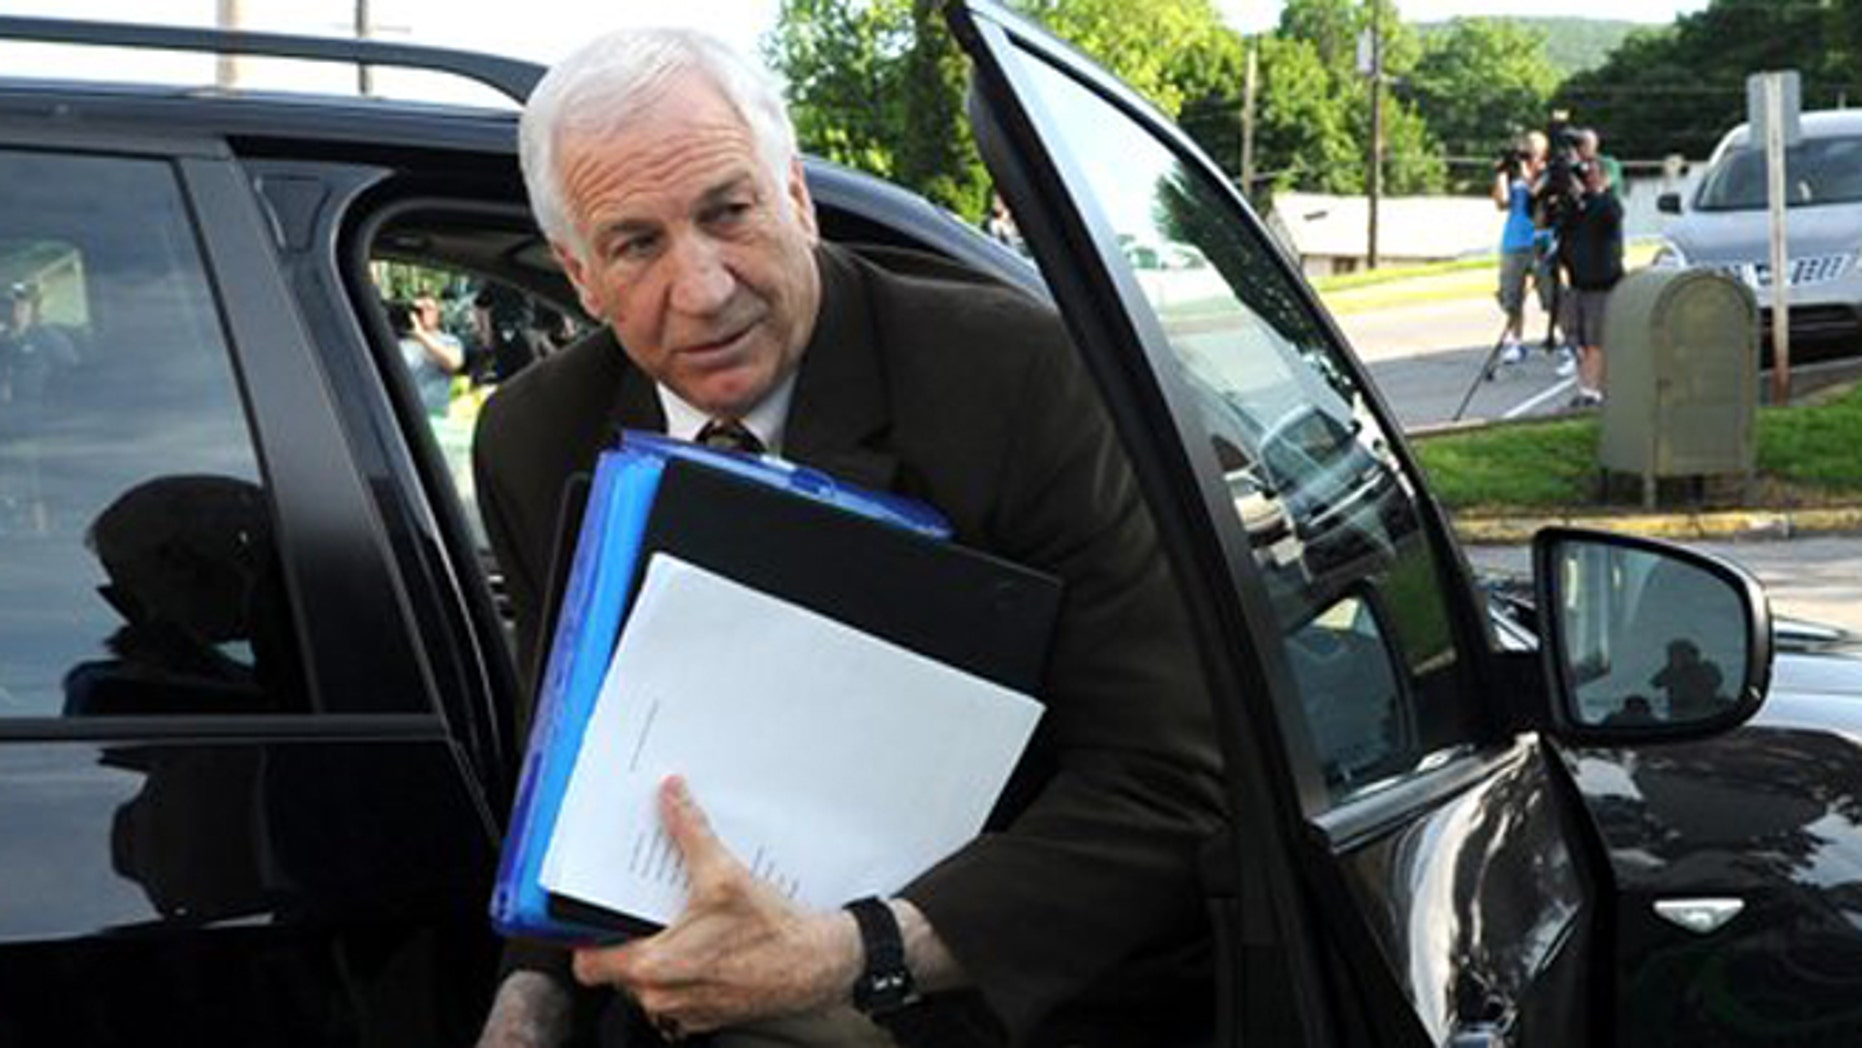 June 14, 2012: Former Penn State University assistant football coach Jerry Sandusky arrives for the fourth day of his trial at the Centre County Courthouse in Bellefonte, Pa.